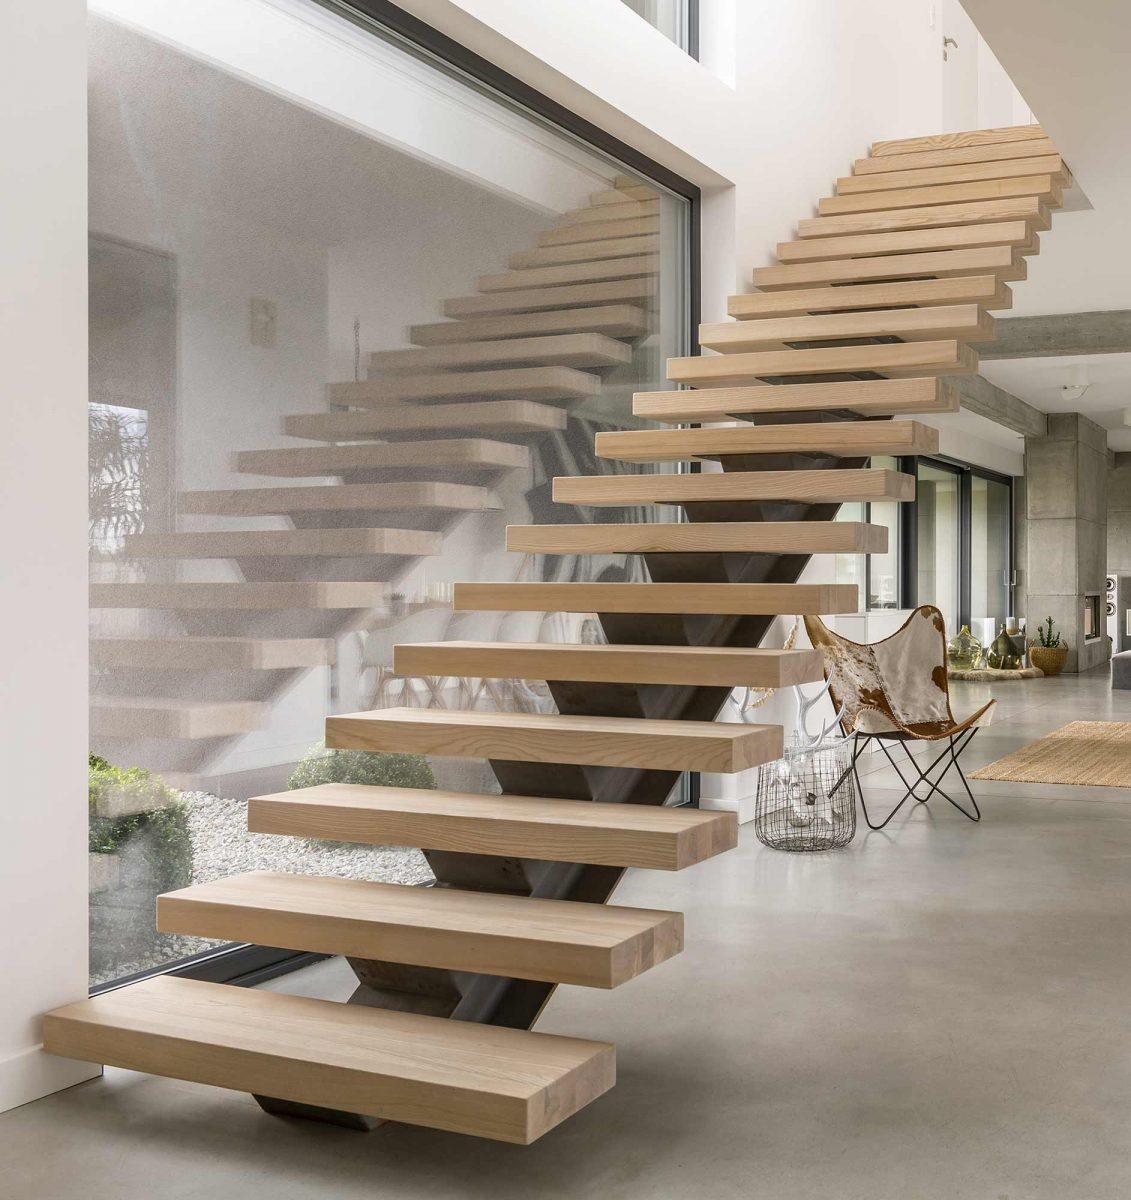 Floating Custom Wood Stair Treads Made from Light Wood